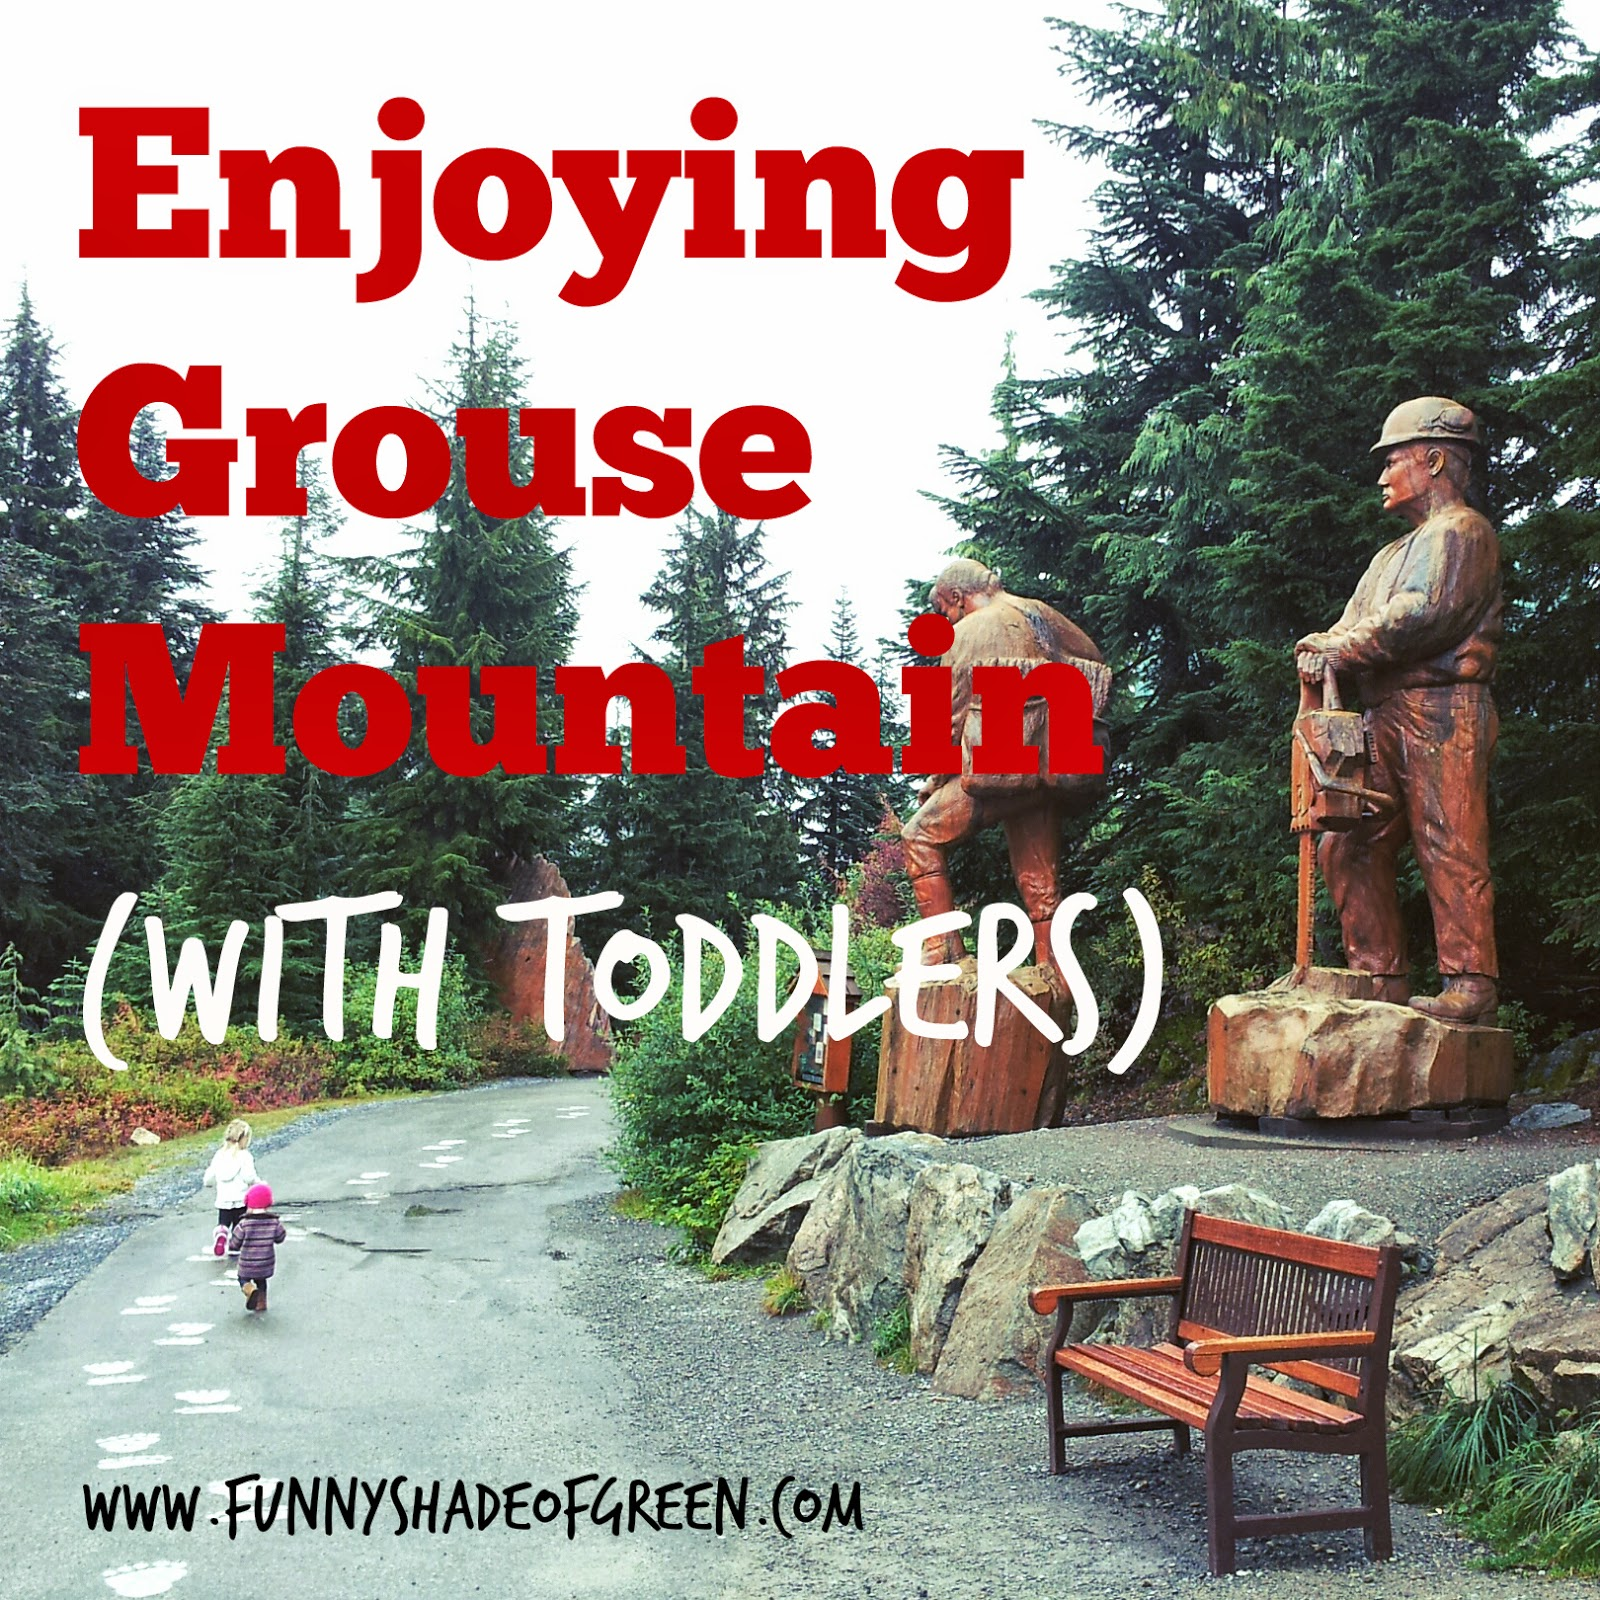 http://www.onesmileymonkey.com/tips-2/traveling-tips/enjoying-grouse-mountain-with-toddlers/